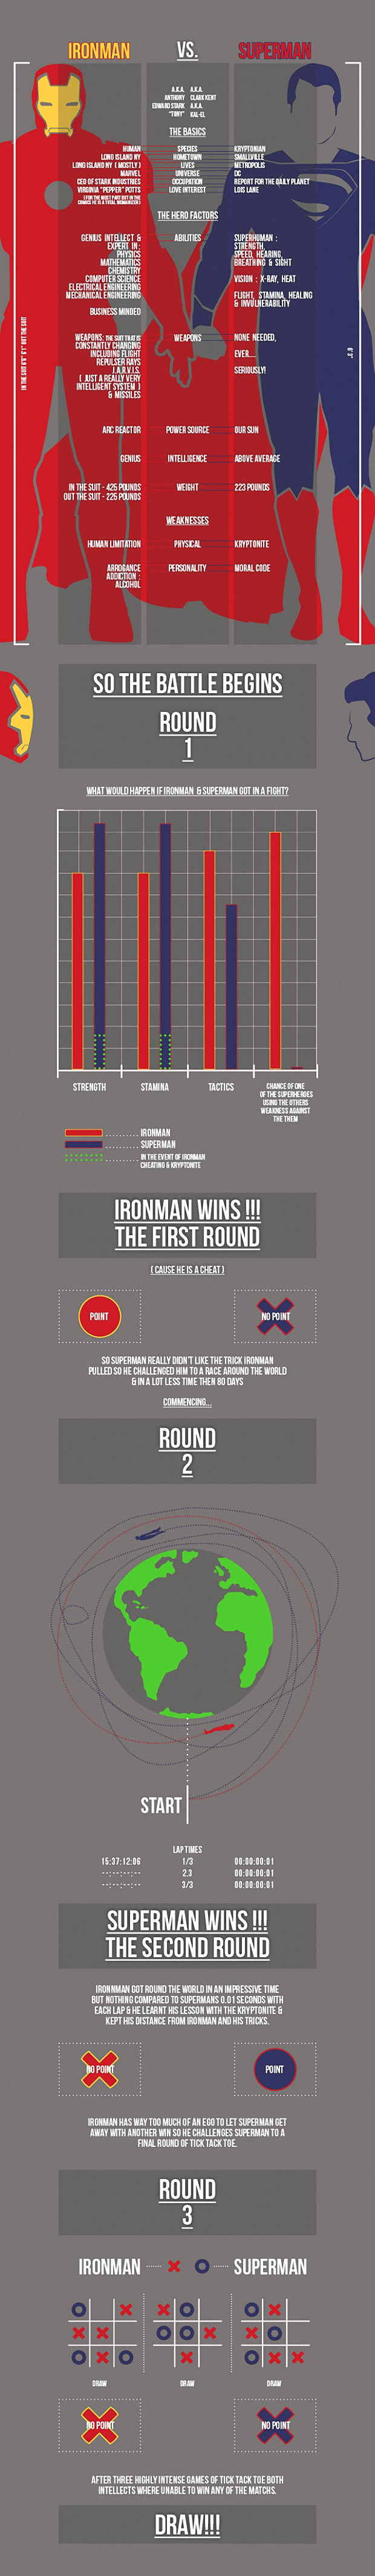 Three Round Battle: Iron Man v. Superman